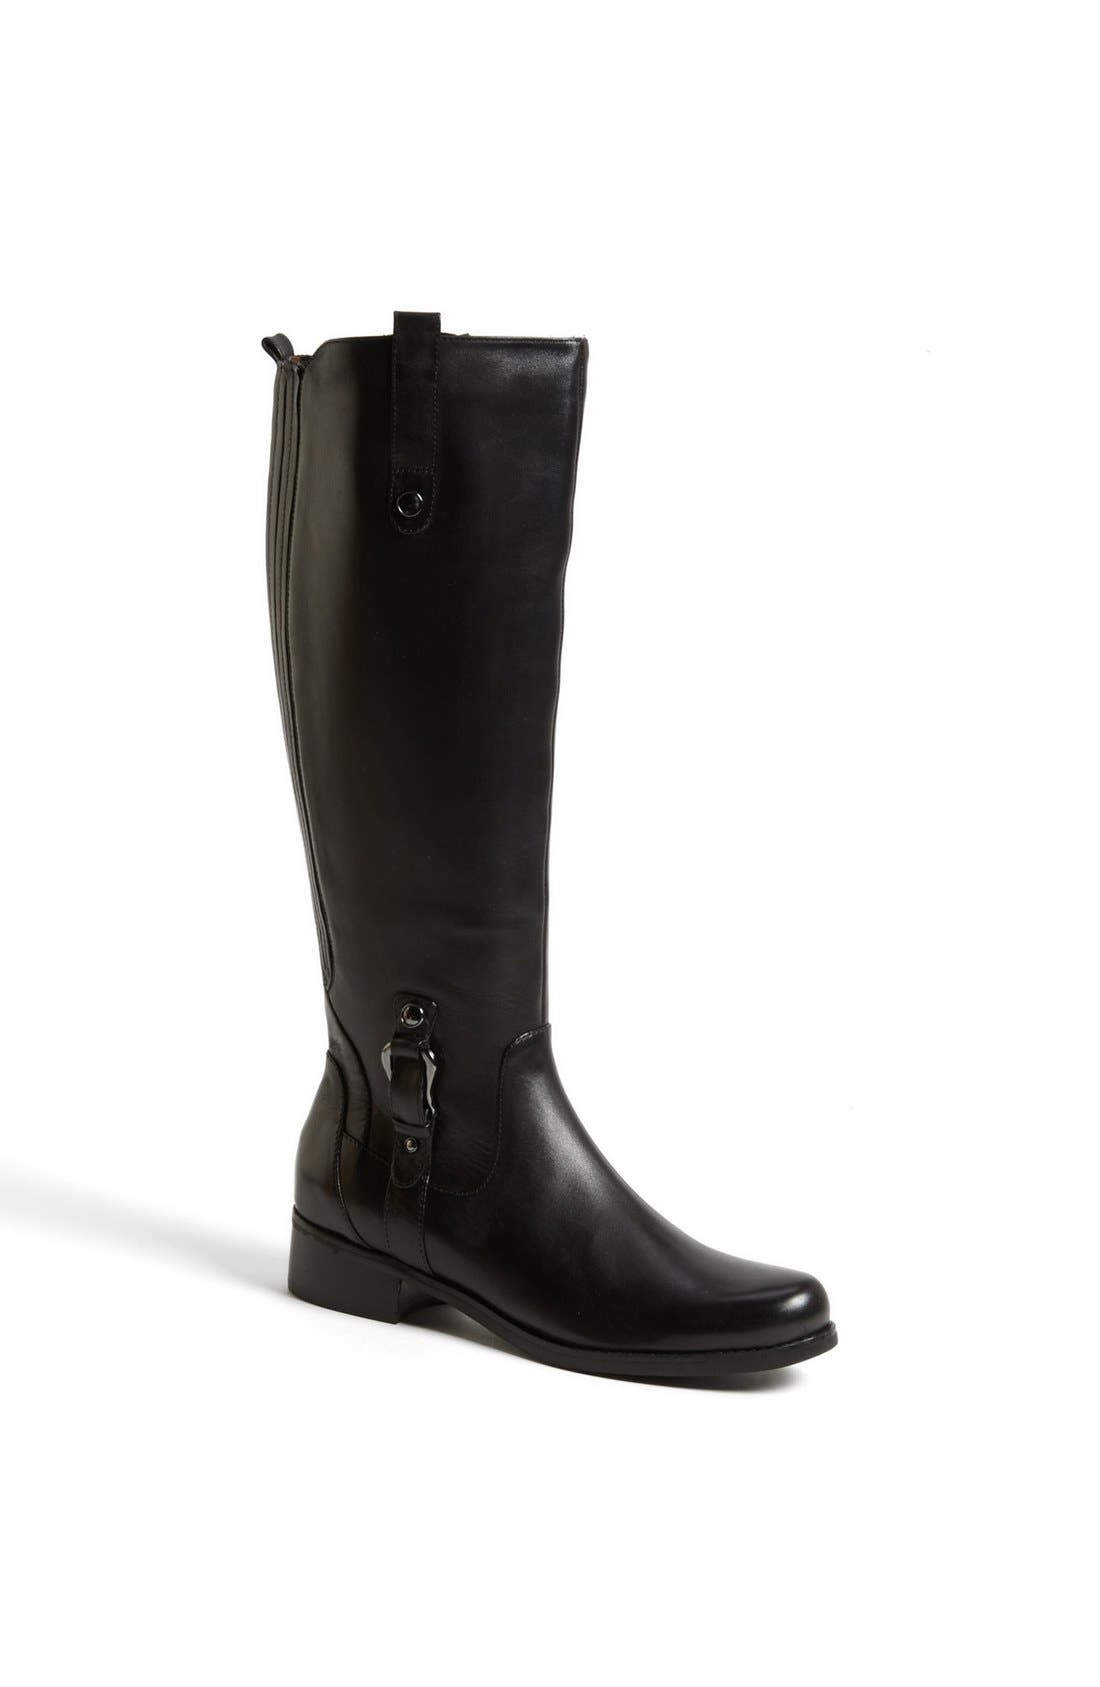 'Venise' Waterproof Leather Riding Boot,                             Main thumbnail 1, color,                             001